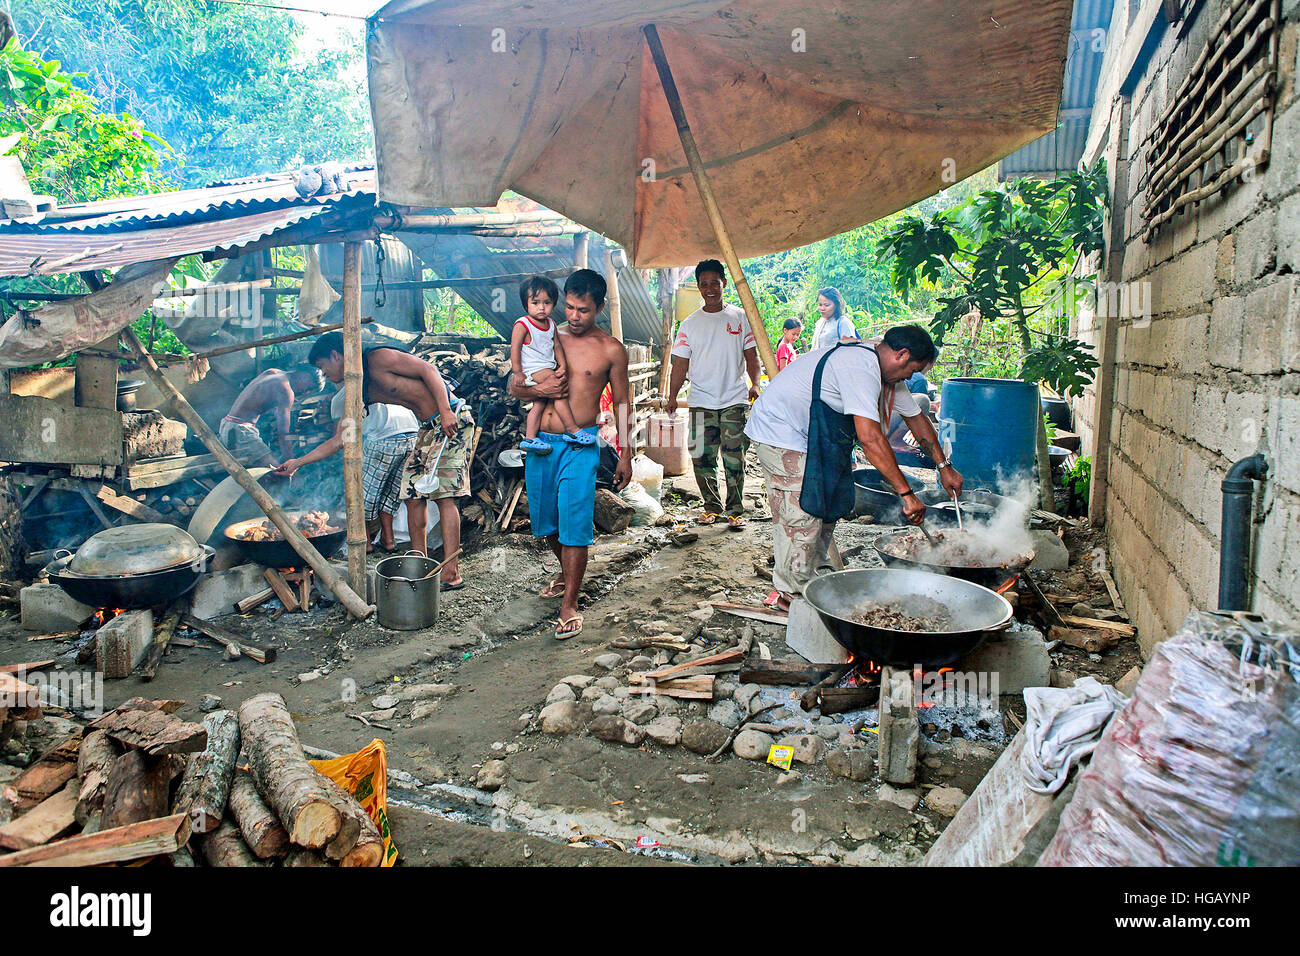 A trio of case studies sheds light on functional kitchen designs for families. Filipino extended families cook food in their outdoor ...